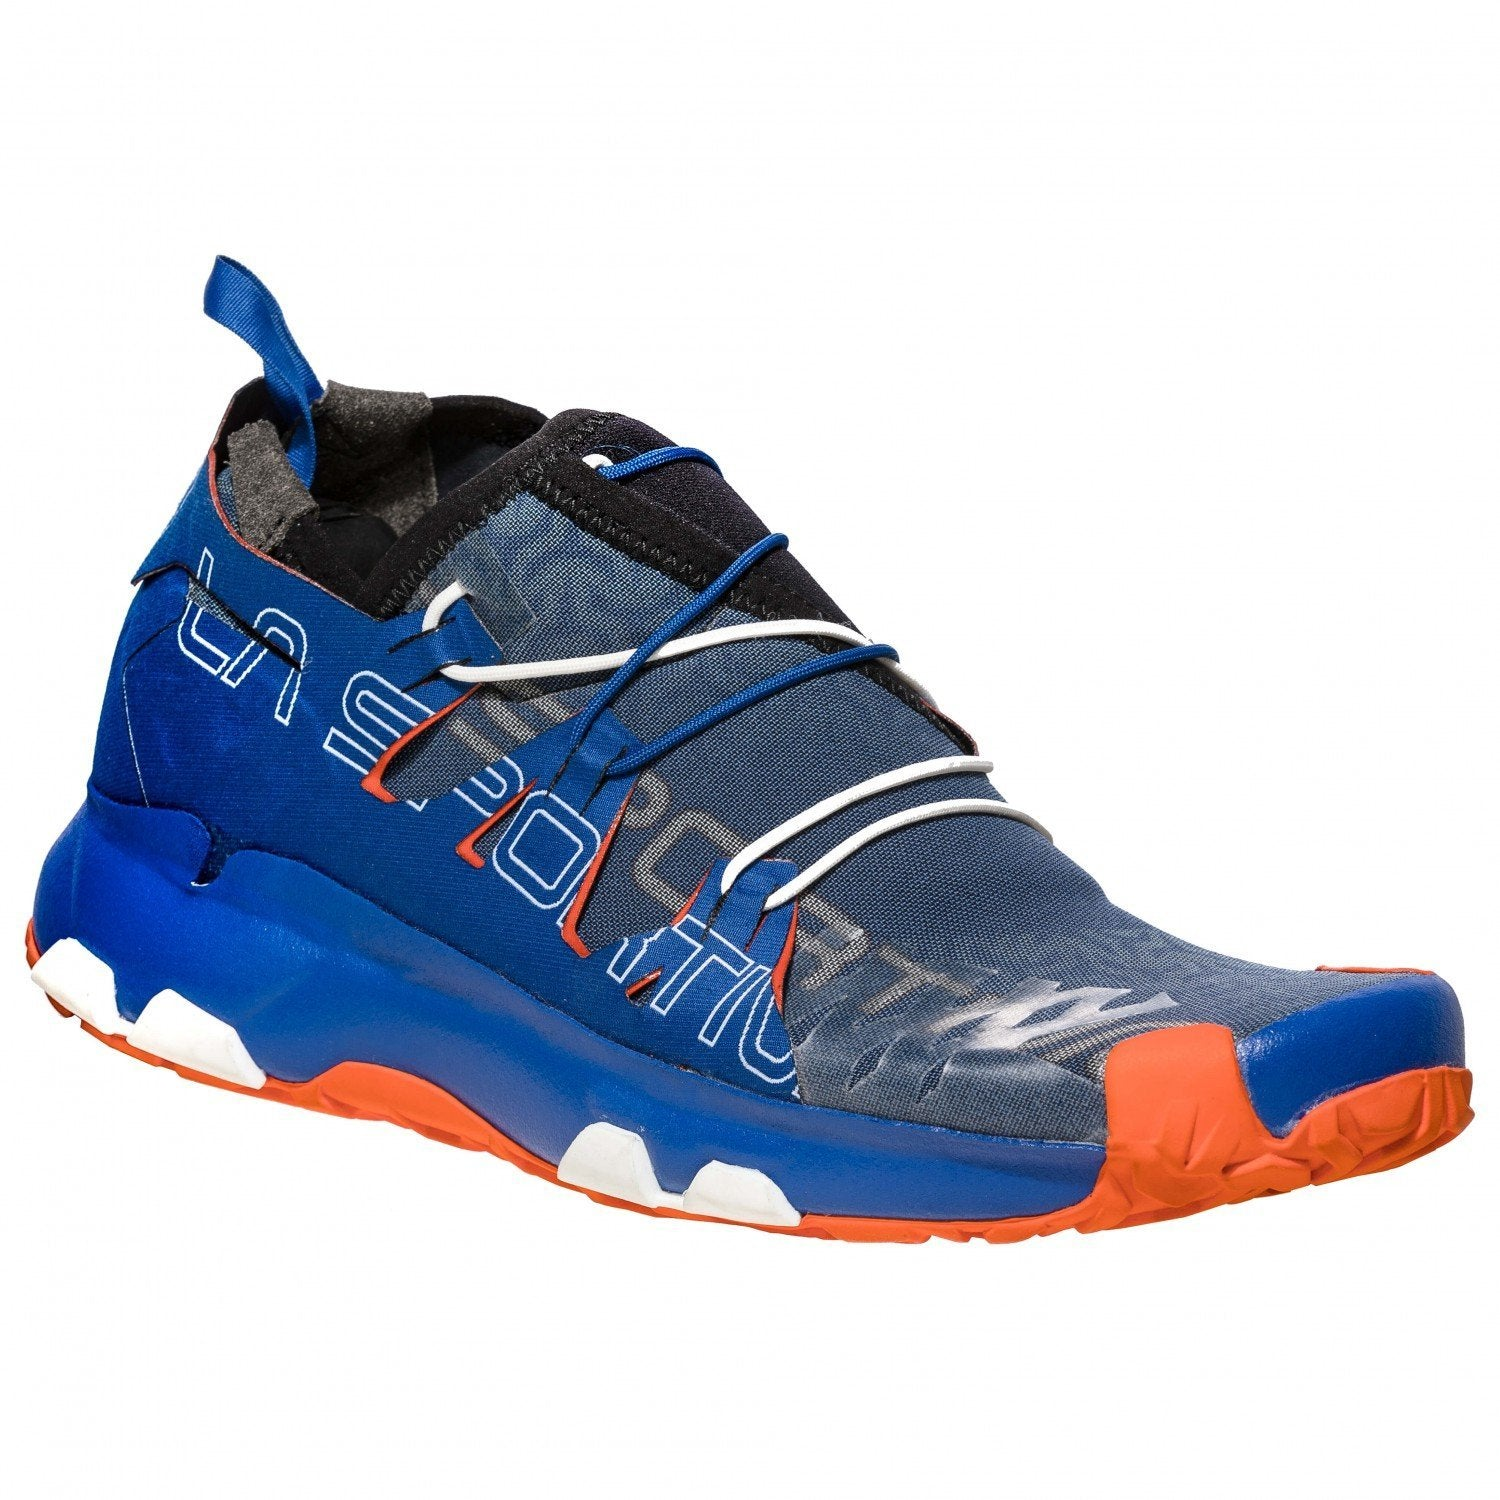 La Sportiva Unika Womens - Blue/Orange